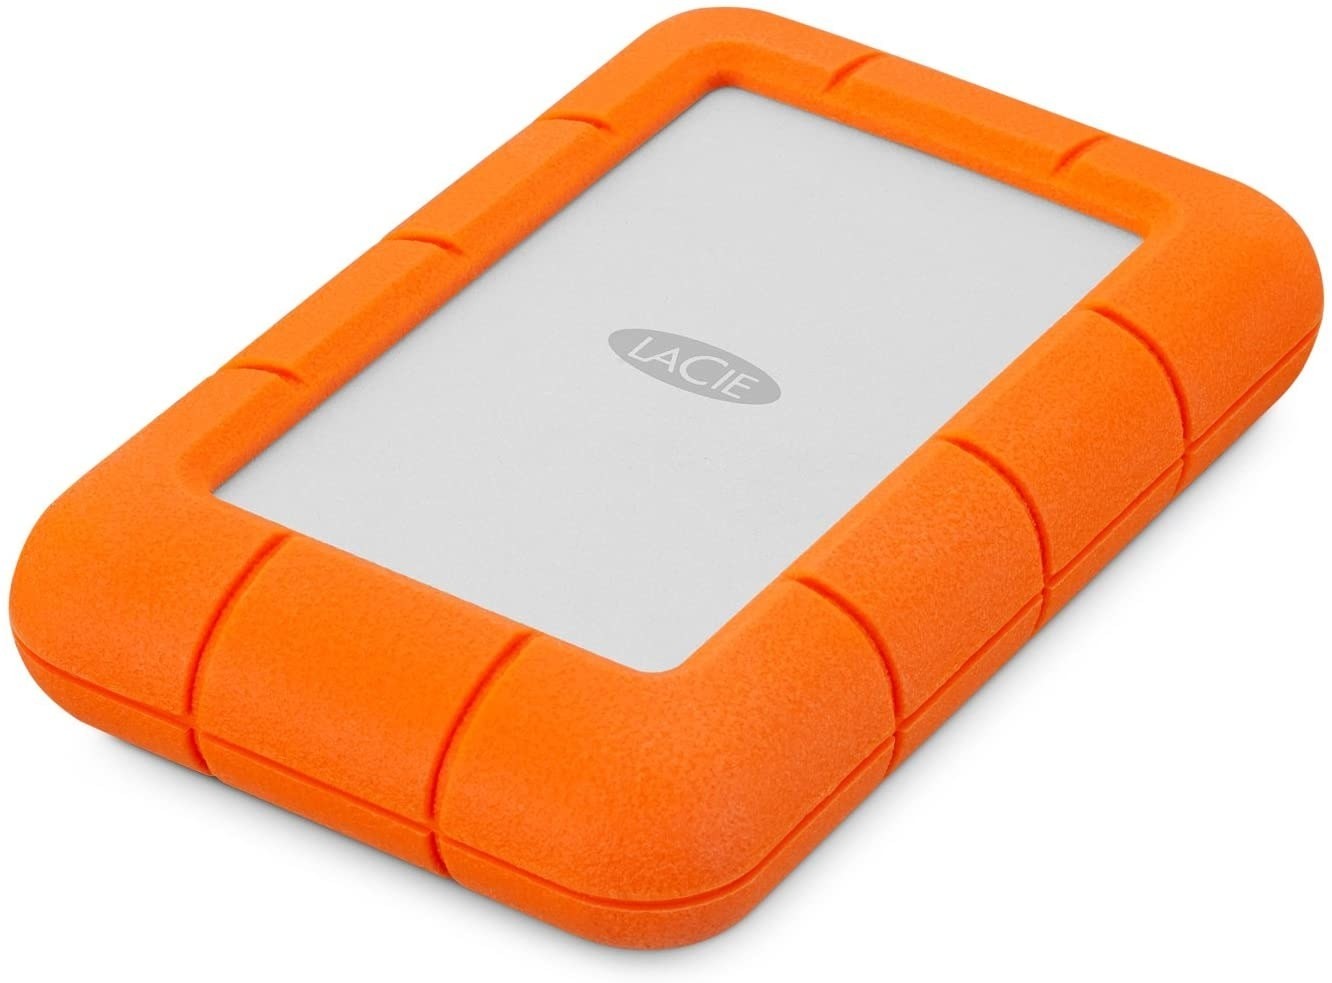 The mini hard drive with an orange exterior